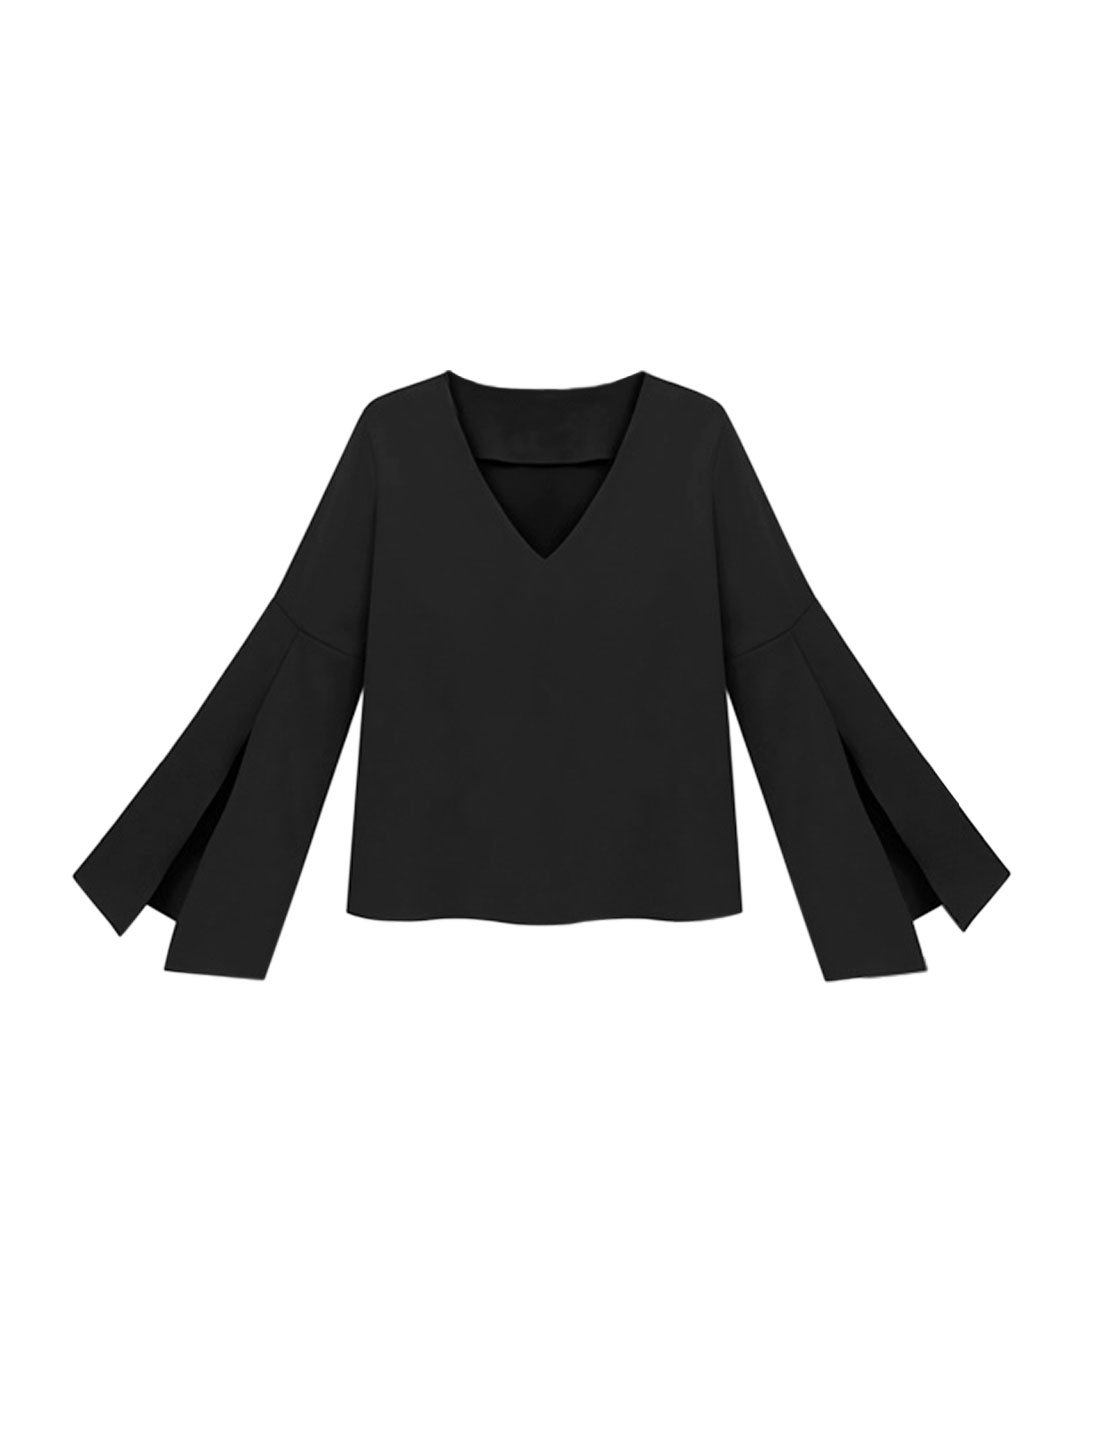 Women V Neck Bell Sleeves High Split Cuffs Blouse Black S